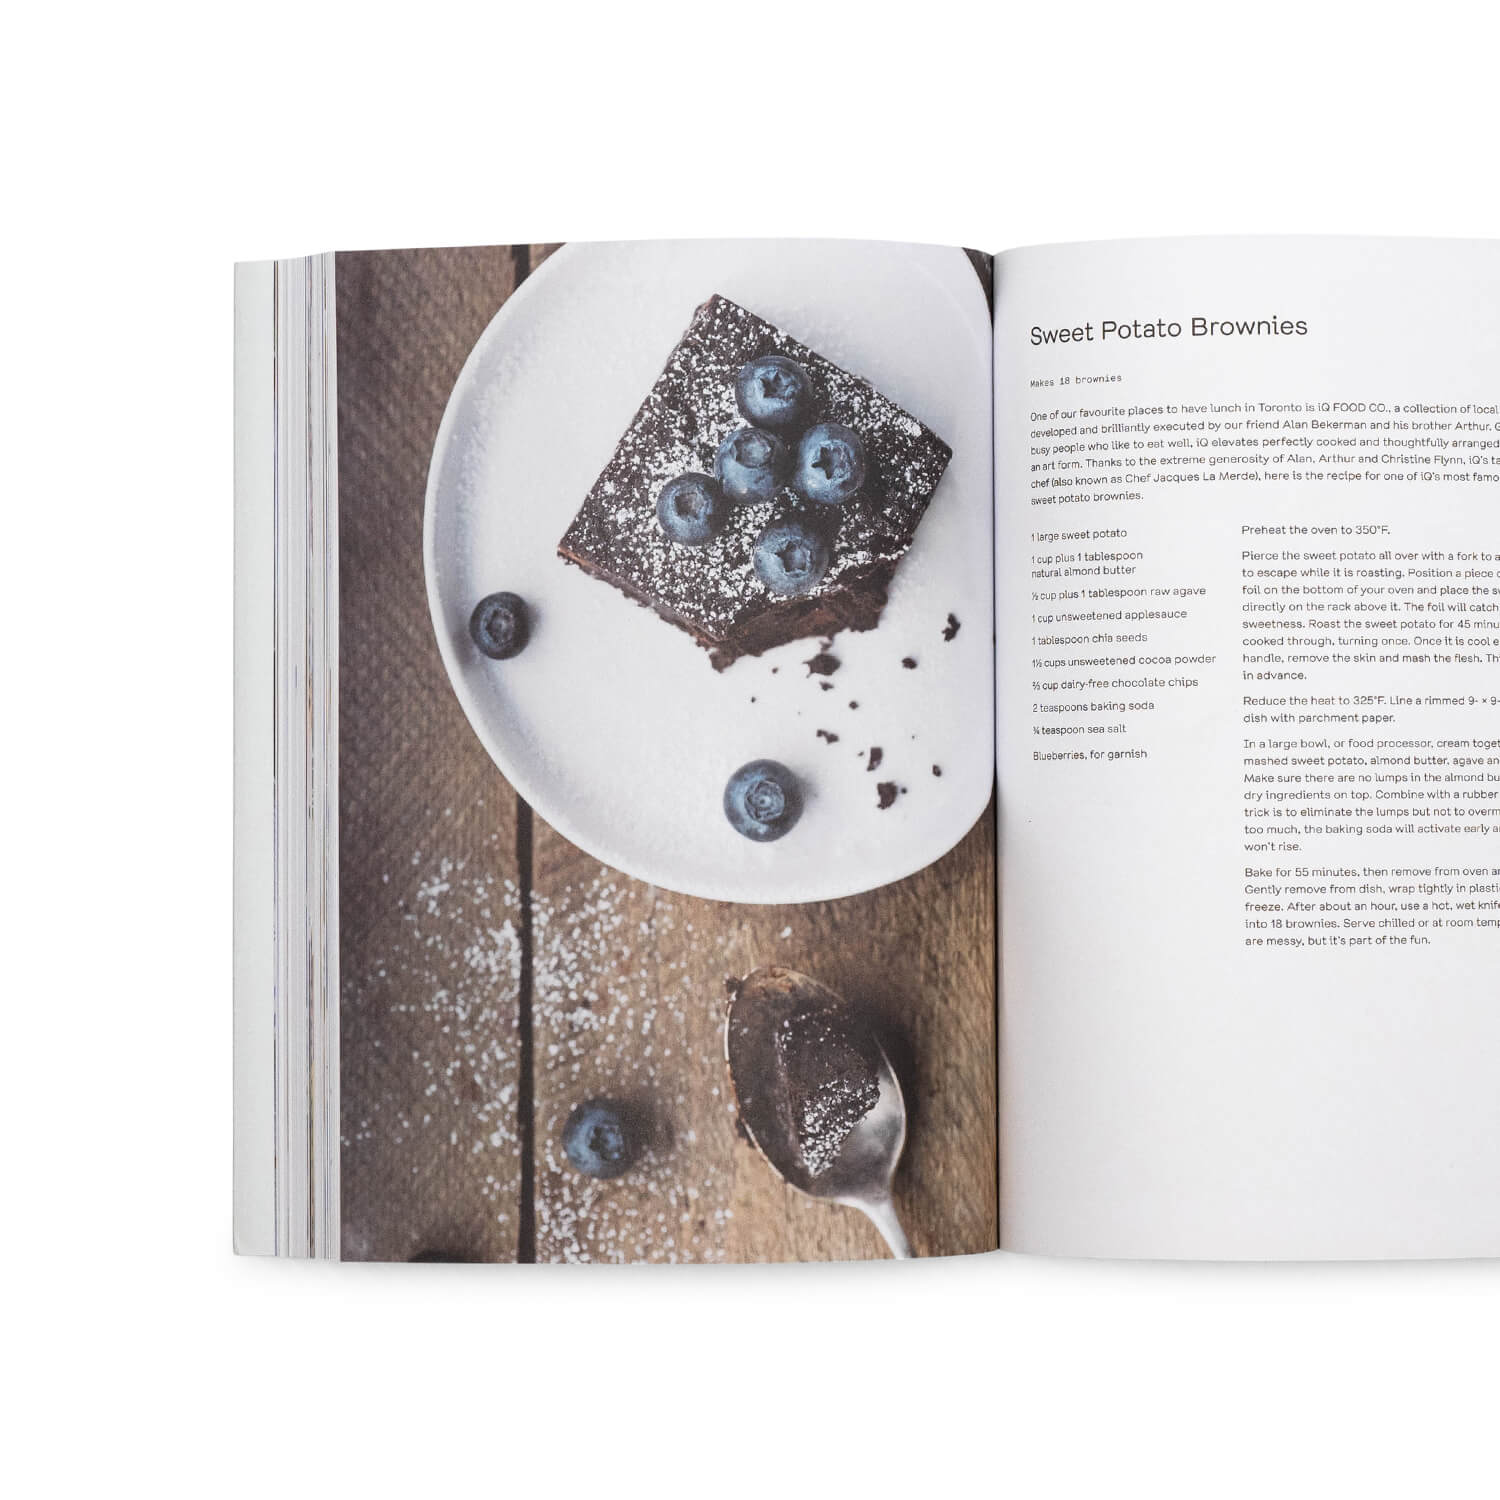 The Greenhouse Cookbook